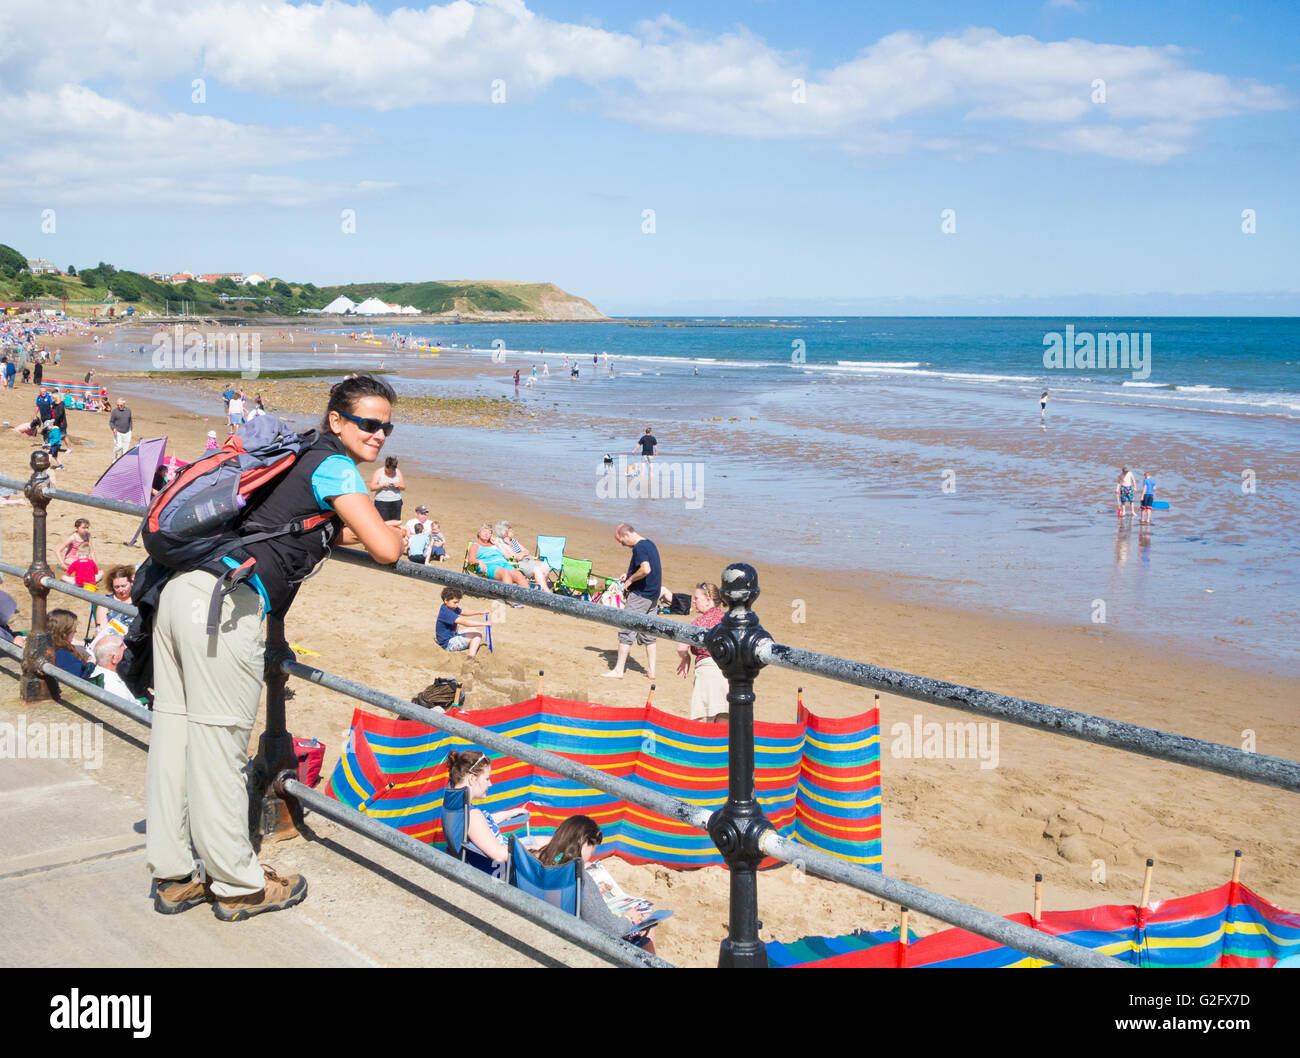 Female hiker overlooking North Bay beach, Scarborough, North Yorkshire, England, United Kingdom - Stock Image